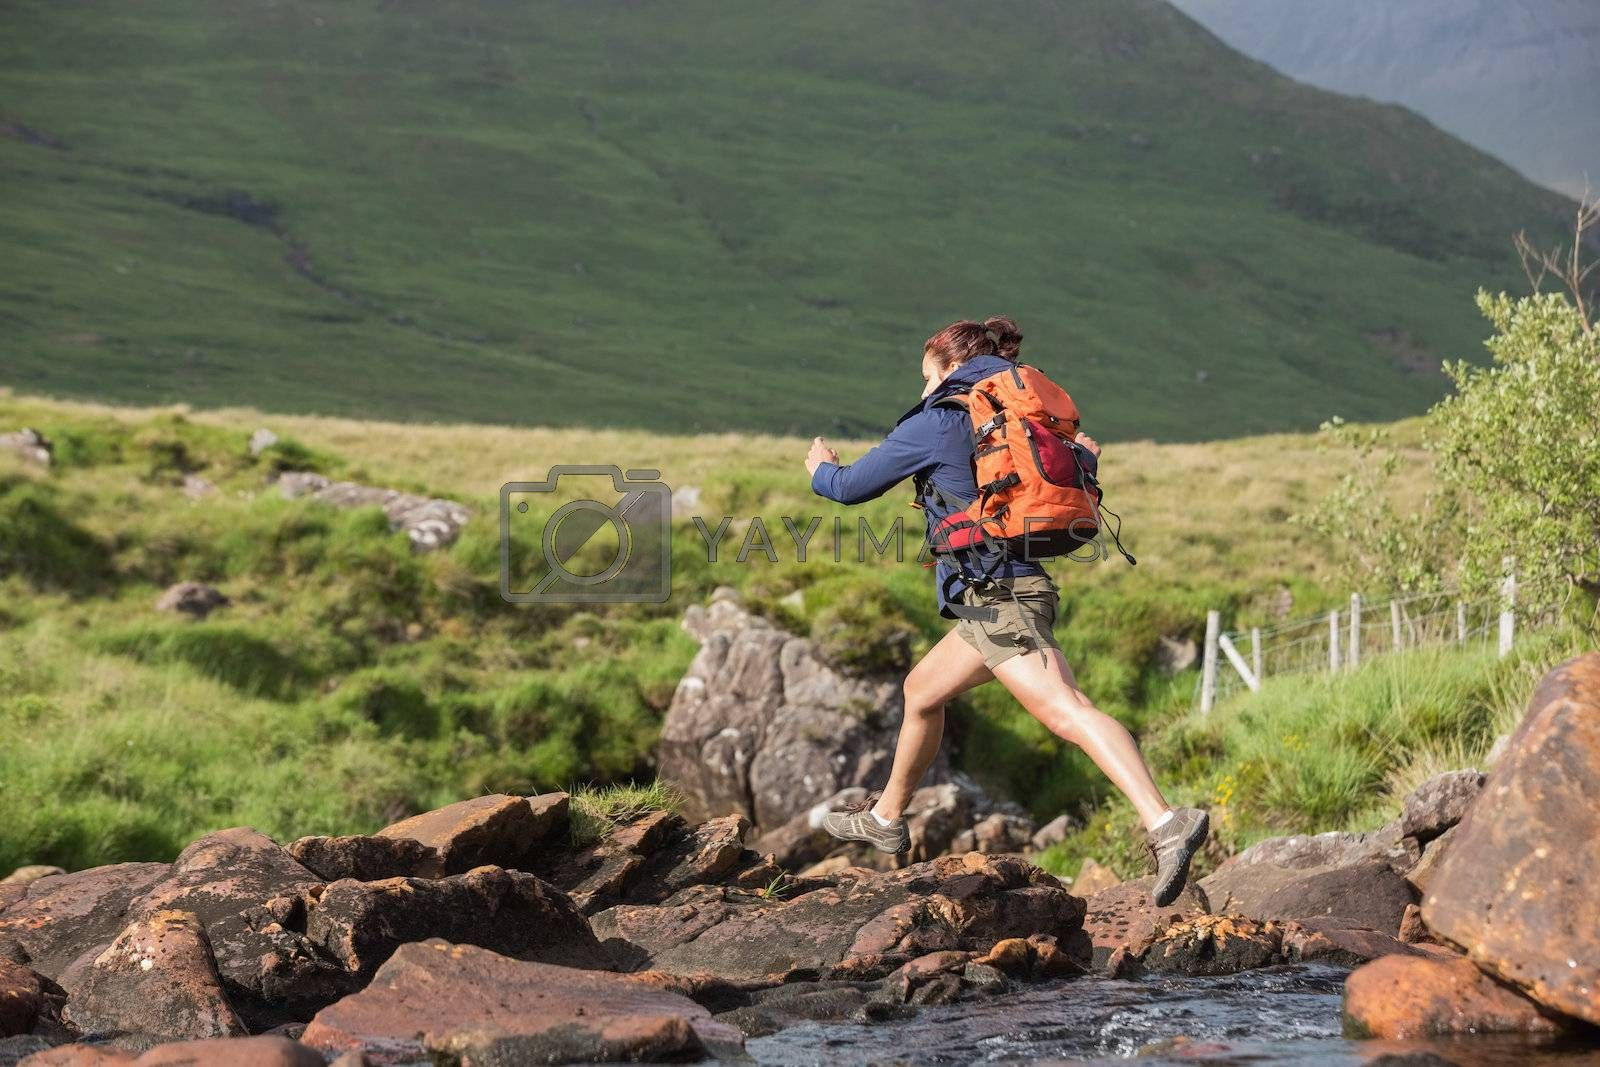 Athletic hiker leaping across rocks in a river by Wavebreakmedia